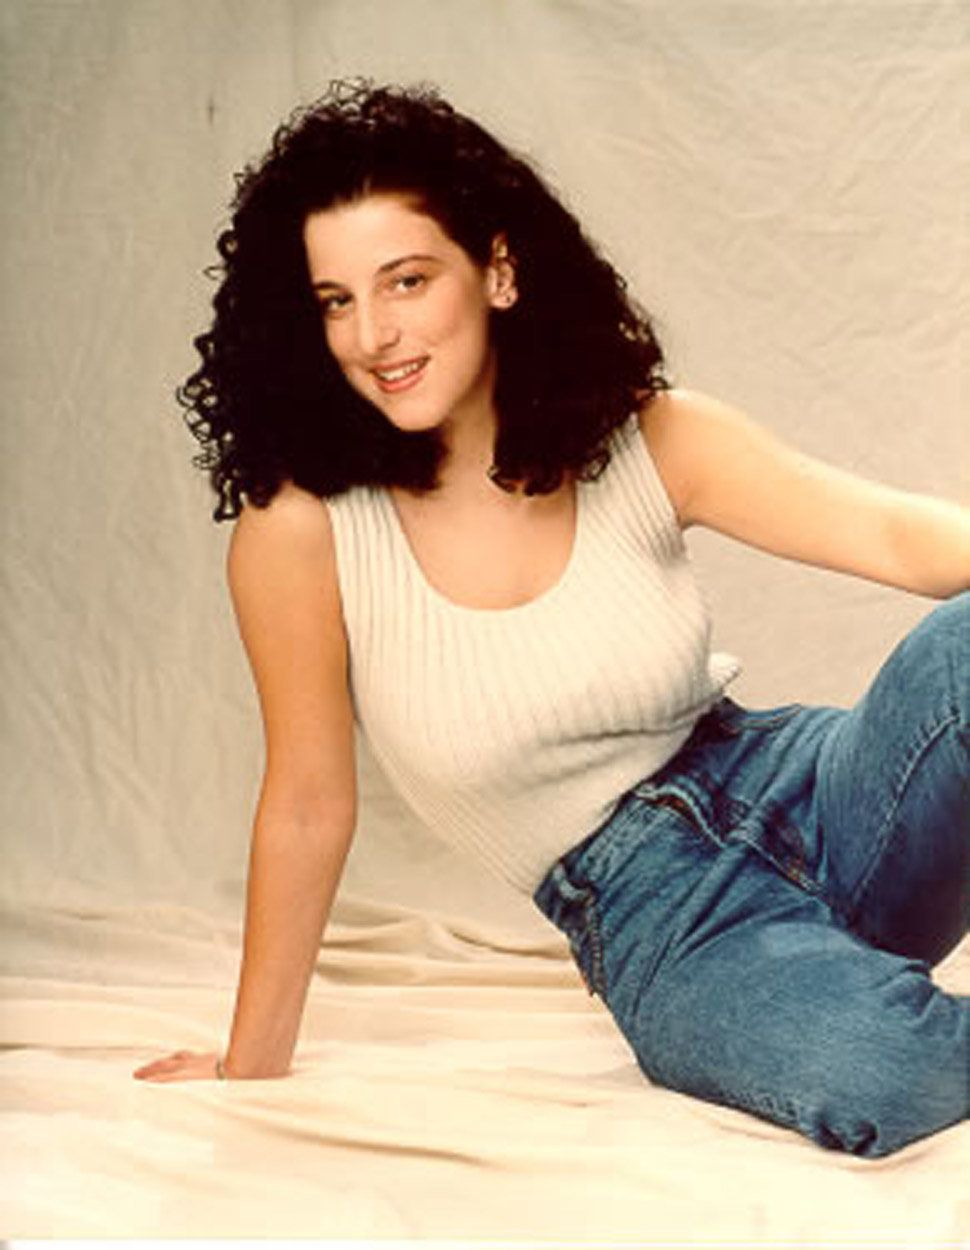 389495 01: (FILE PHOTO) Chandra Ann Levy of Modesto, CA poses in this undated file photo. Levy vanished April 30, 2001 after completing a federal internship in Washington, DC. Cogressman Gary Condit (D-CA), said to have had an affair with missing intern Chandra Levy, will speak about the case for the first time publicly August 23, 2001 in a televised interview with ABC''s Connie Chung. (Photo by Getty Images)